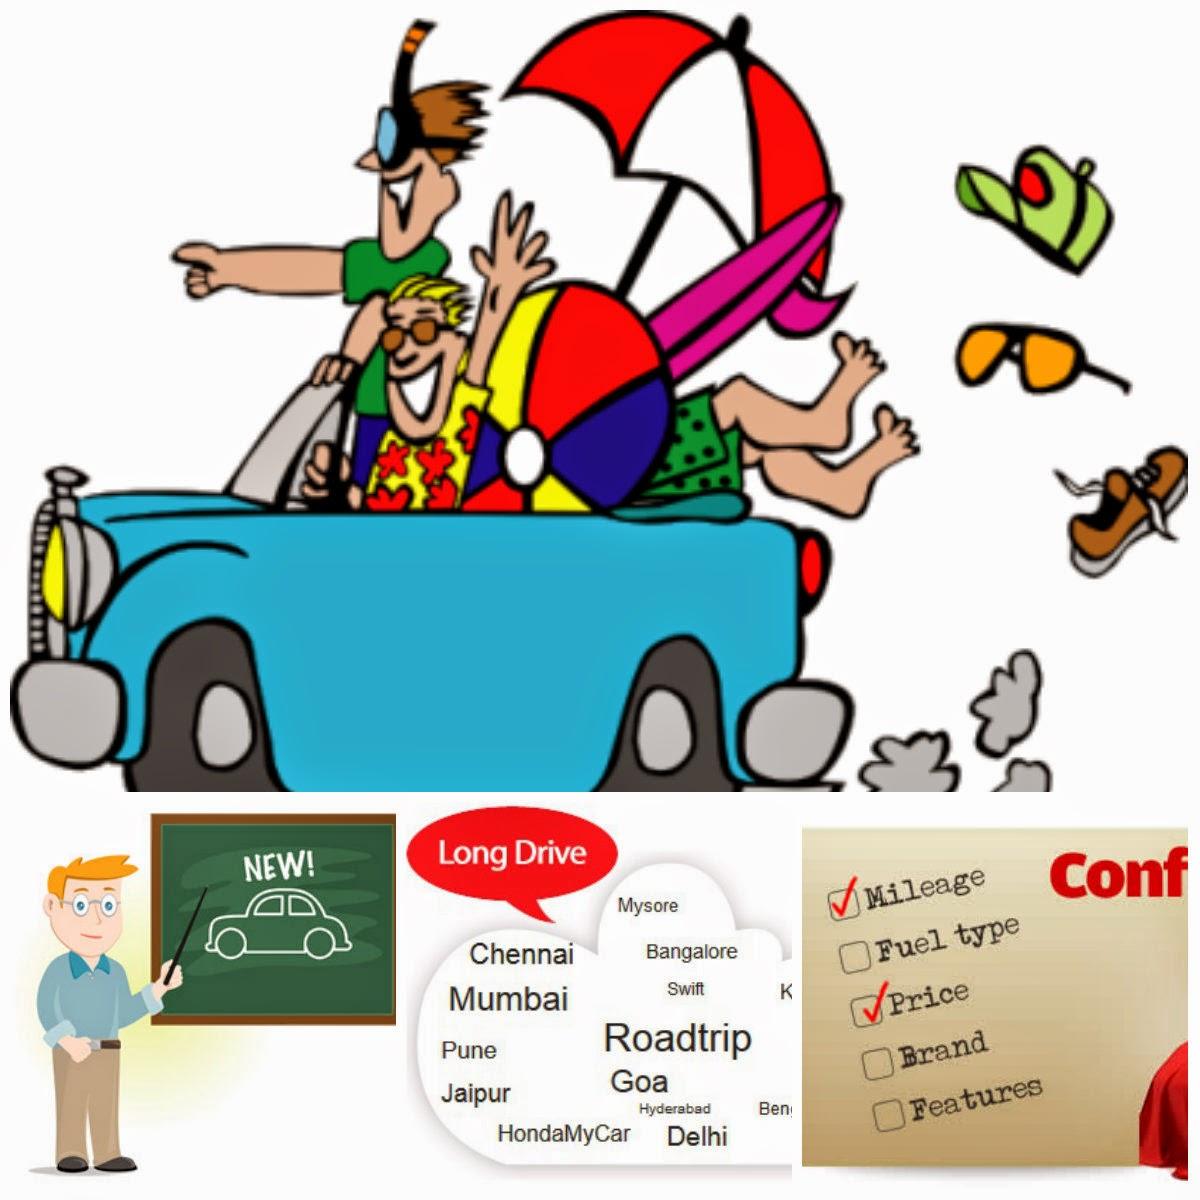 CarConnect.in - A Place For Car Lovers & RoadTrippers image